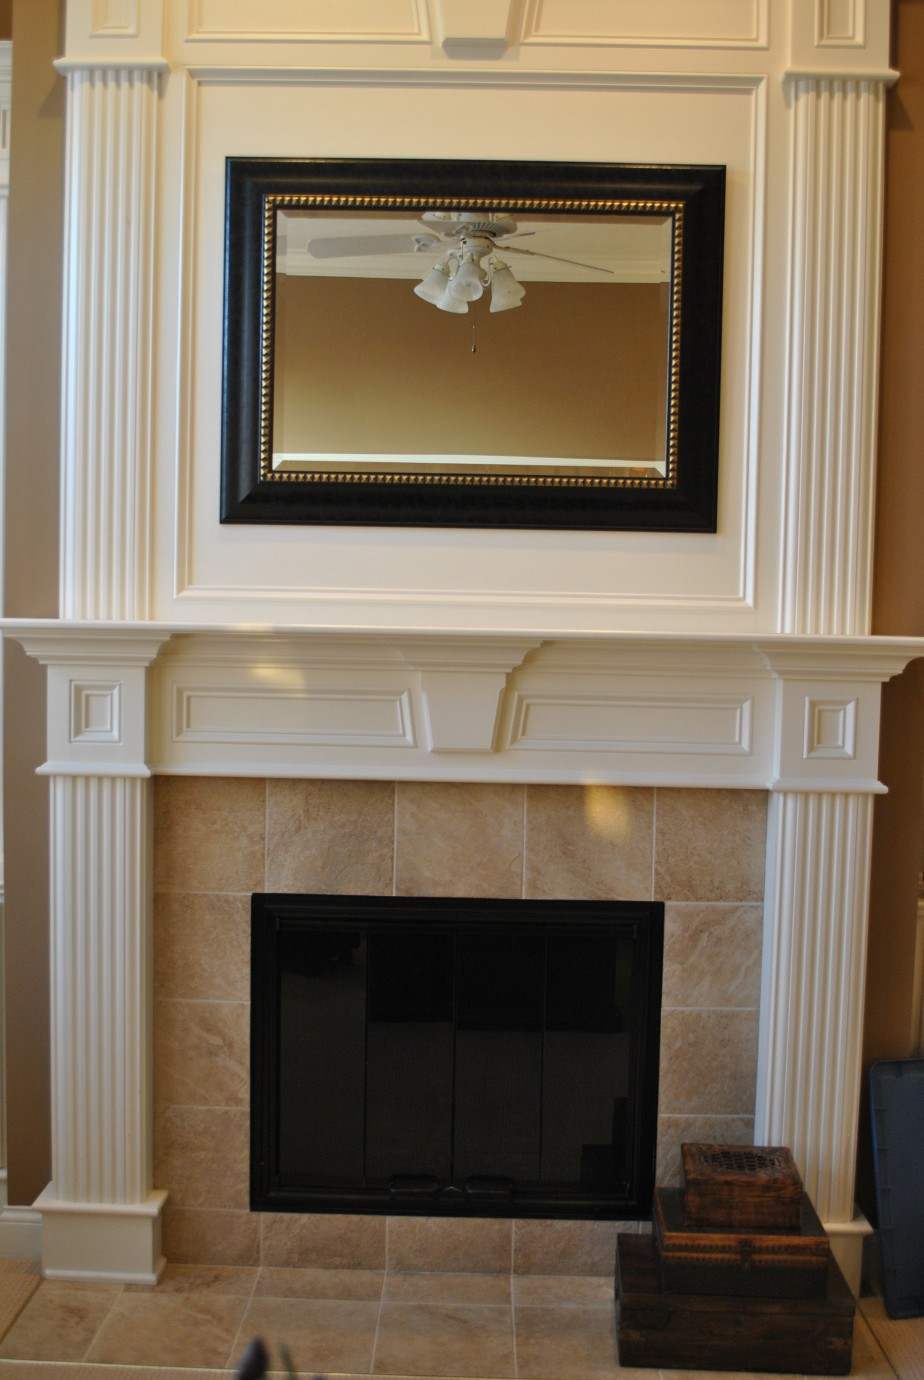 White fireplace surround ideas fireplace design ideas - Brick fireplace surrounds ideas ...